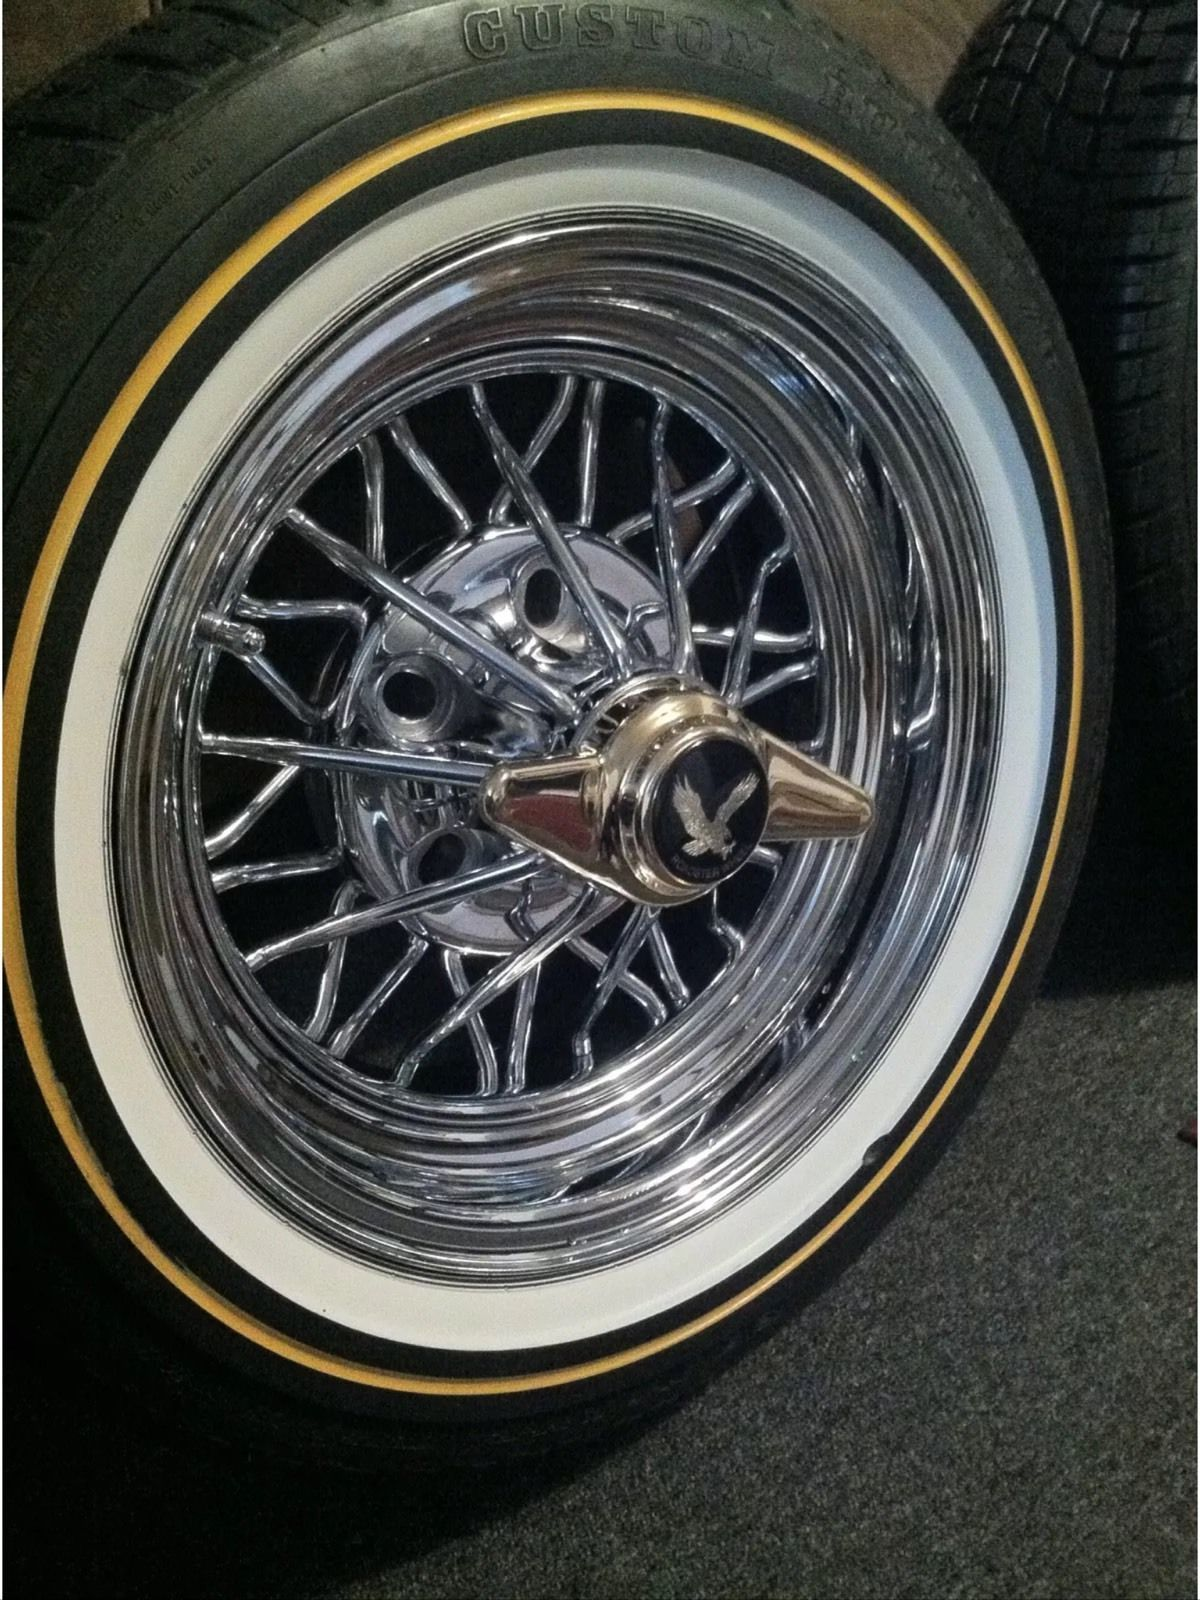 14x6 Cragar 30 Spoke Starwire Wheels with Vogue Tires ...